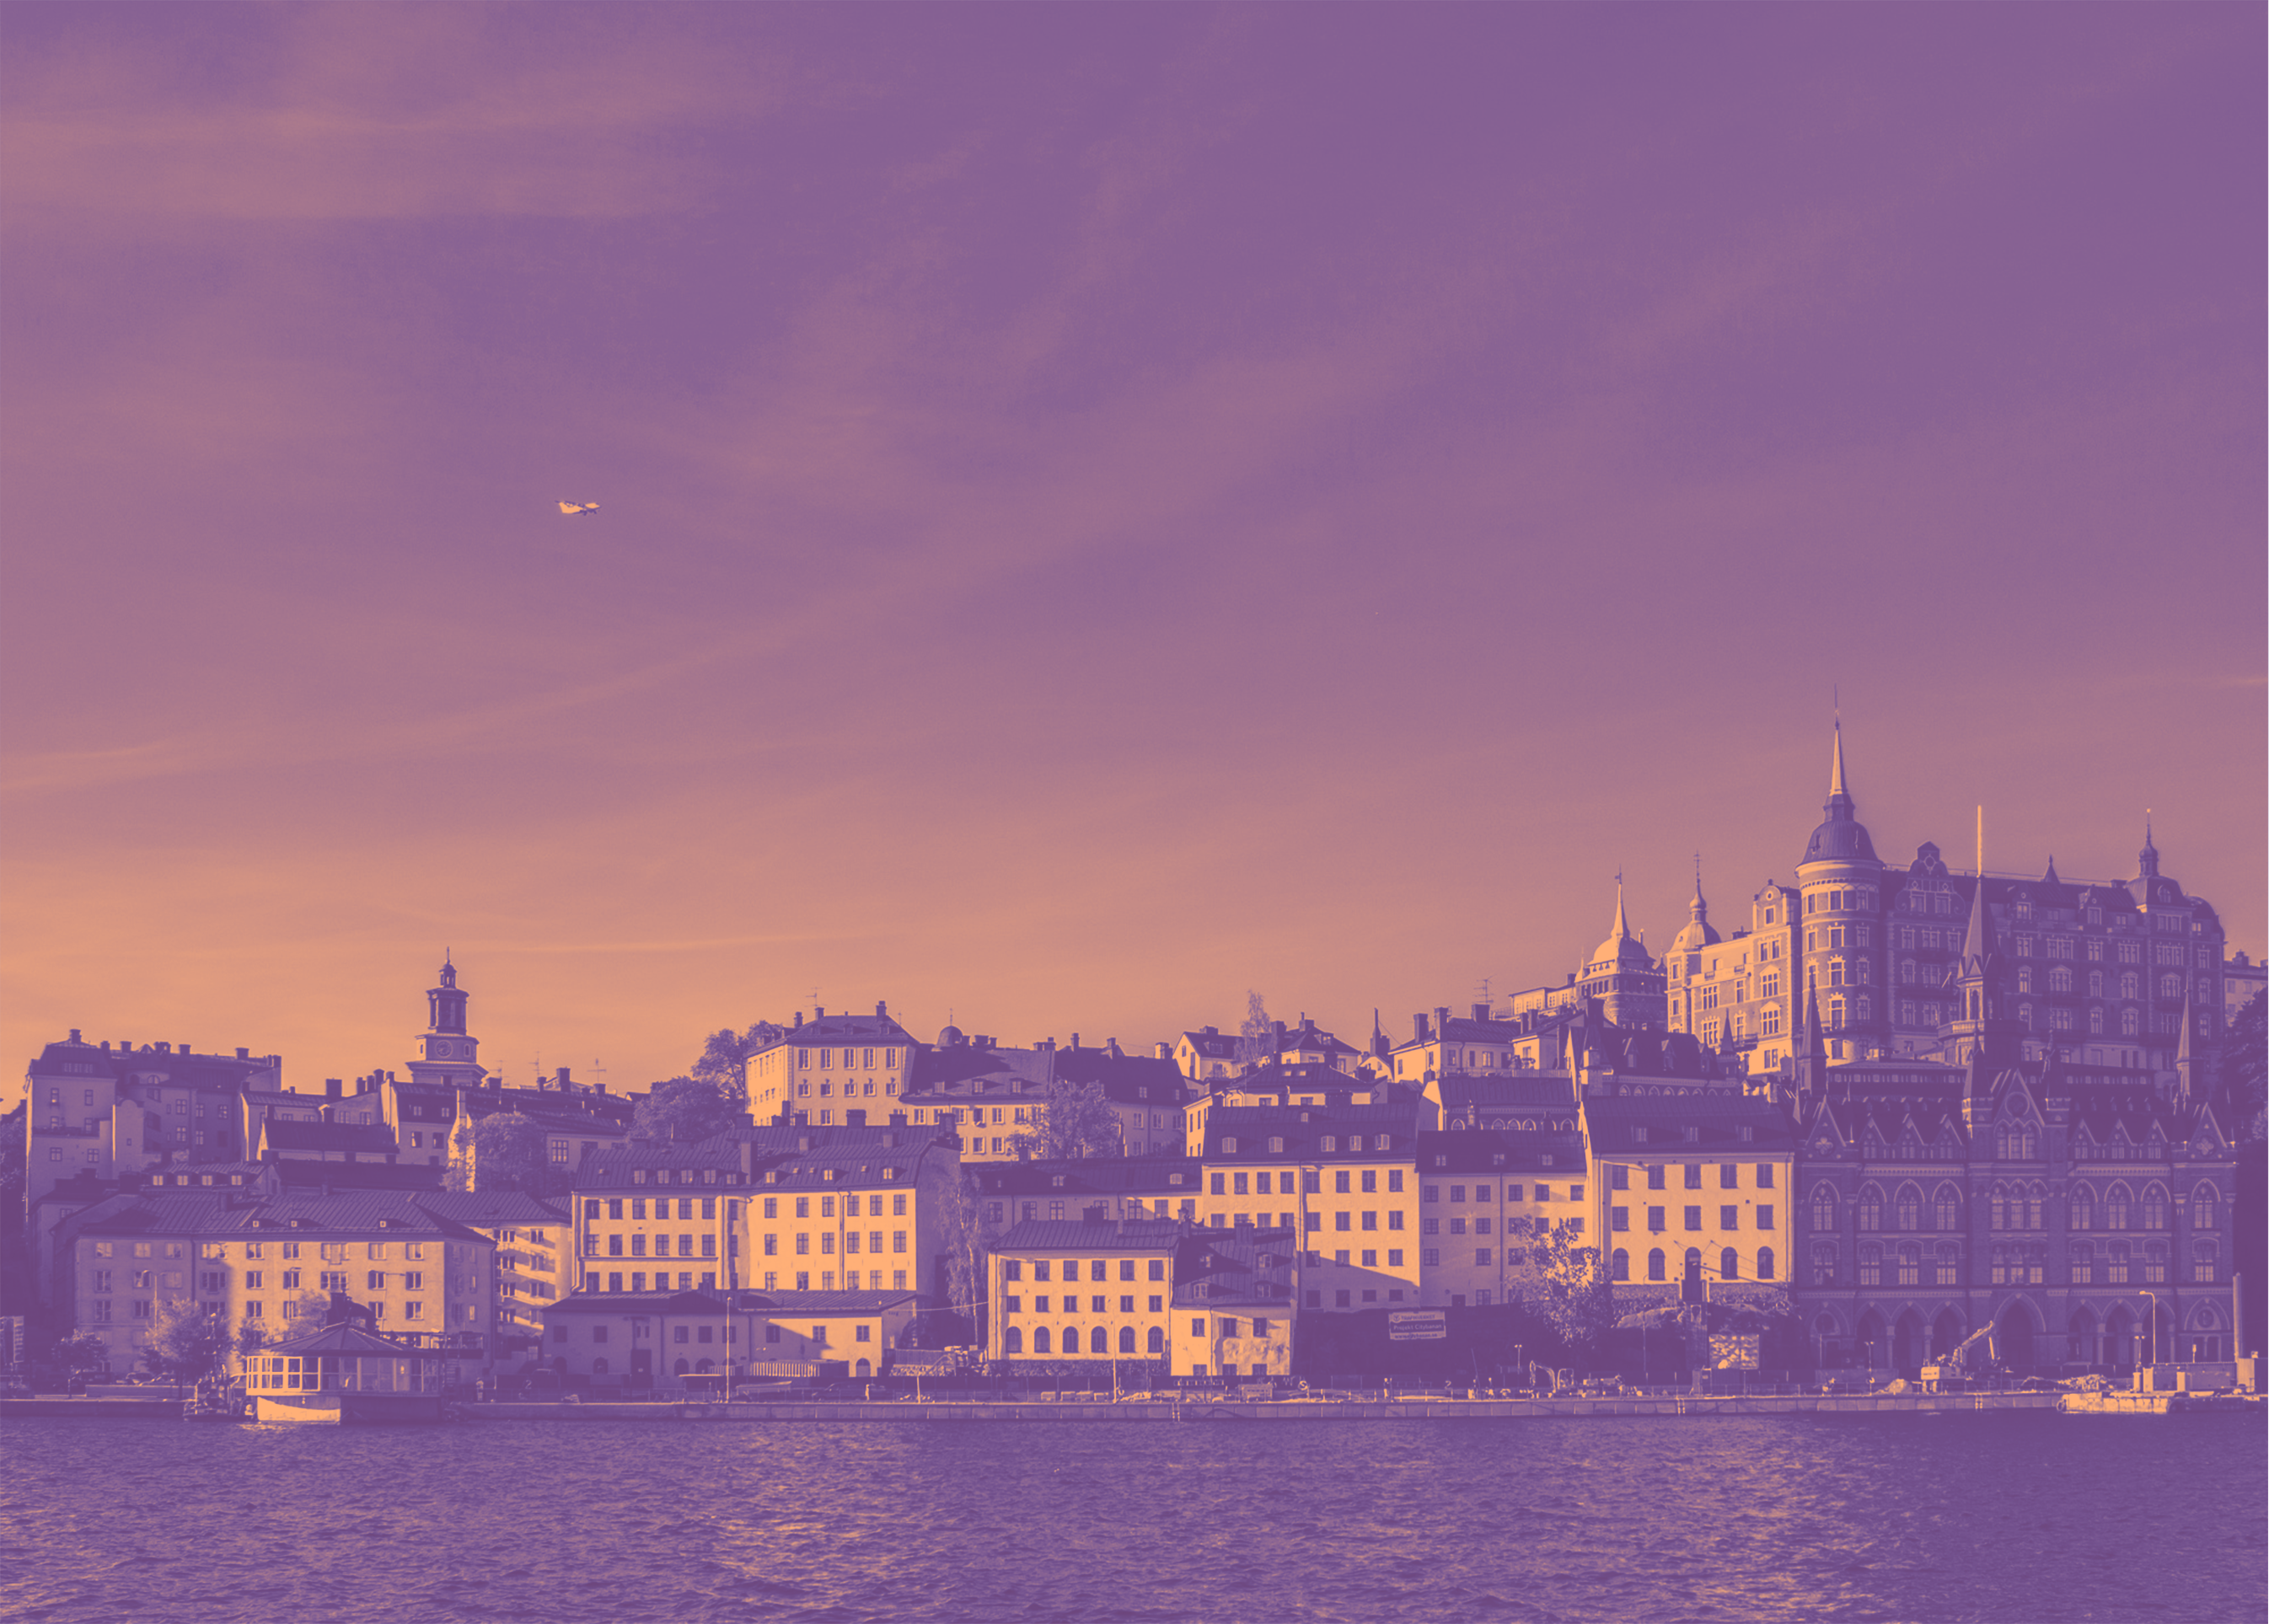 Supporting non-organic growth strategy by identifying Scandinavian acquisition targets